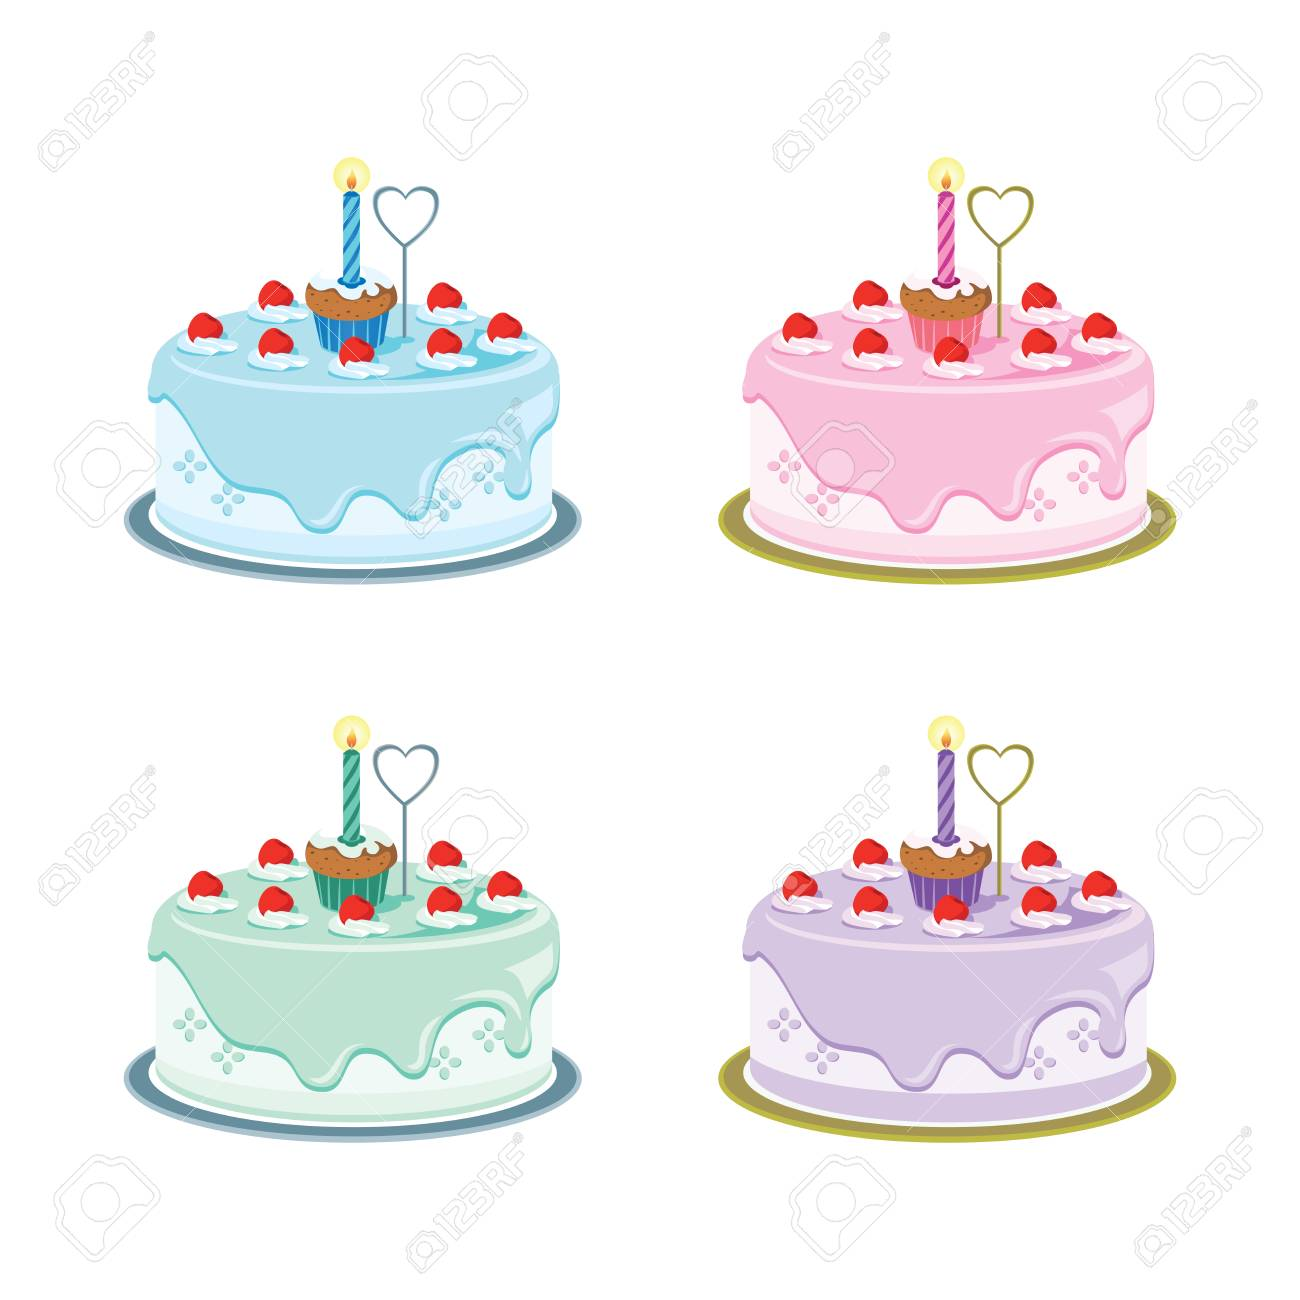 First Birthday Cakes Vector Illustration Of Baby S First Birthday